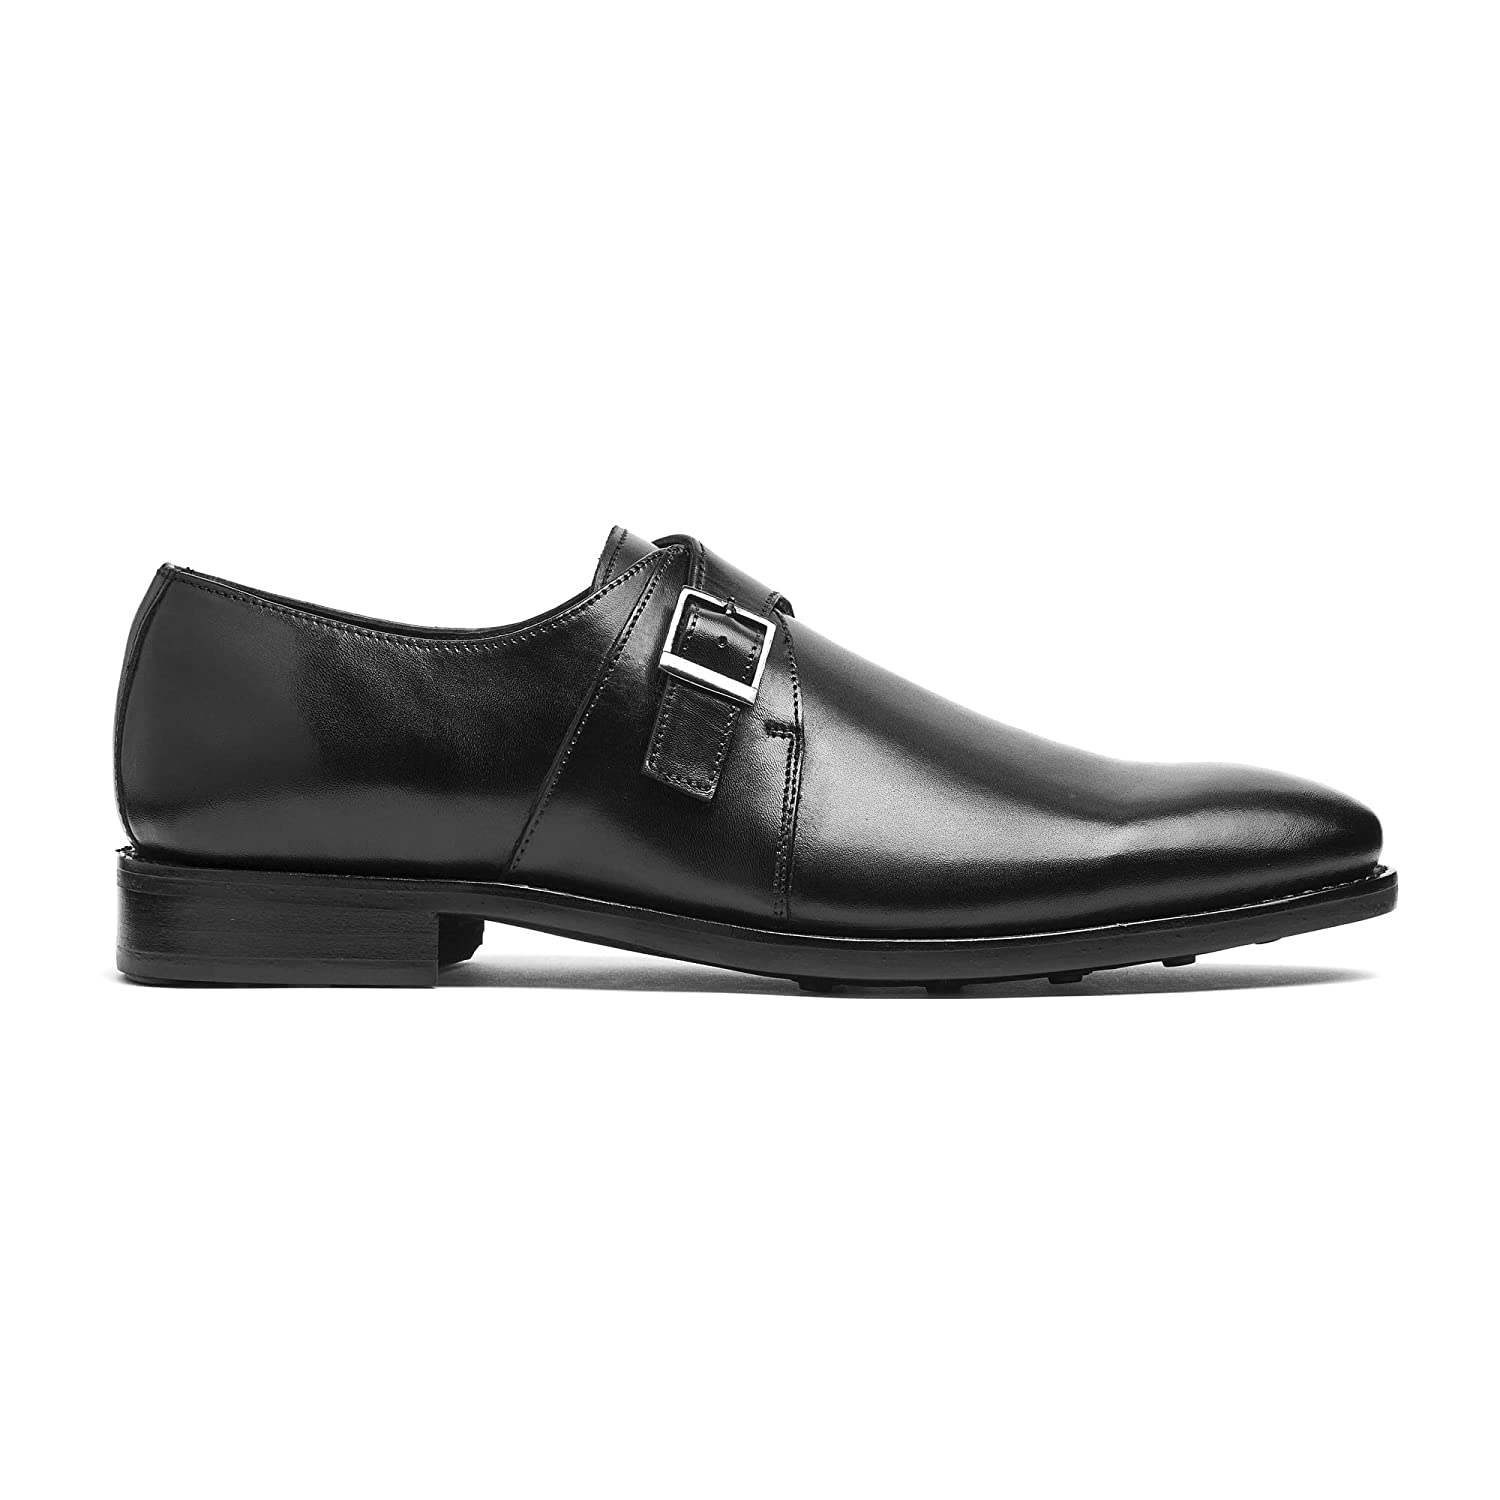 ca1615e36b1 Timberlux New York Black Single Monk Strap Men's Dress Shoes Welted Leather  7-14